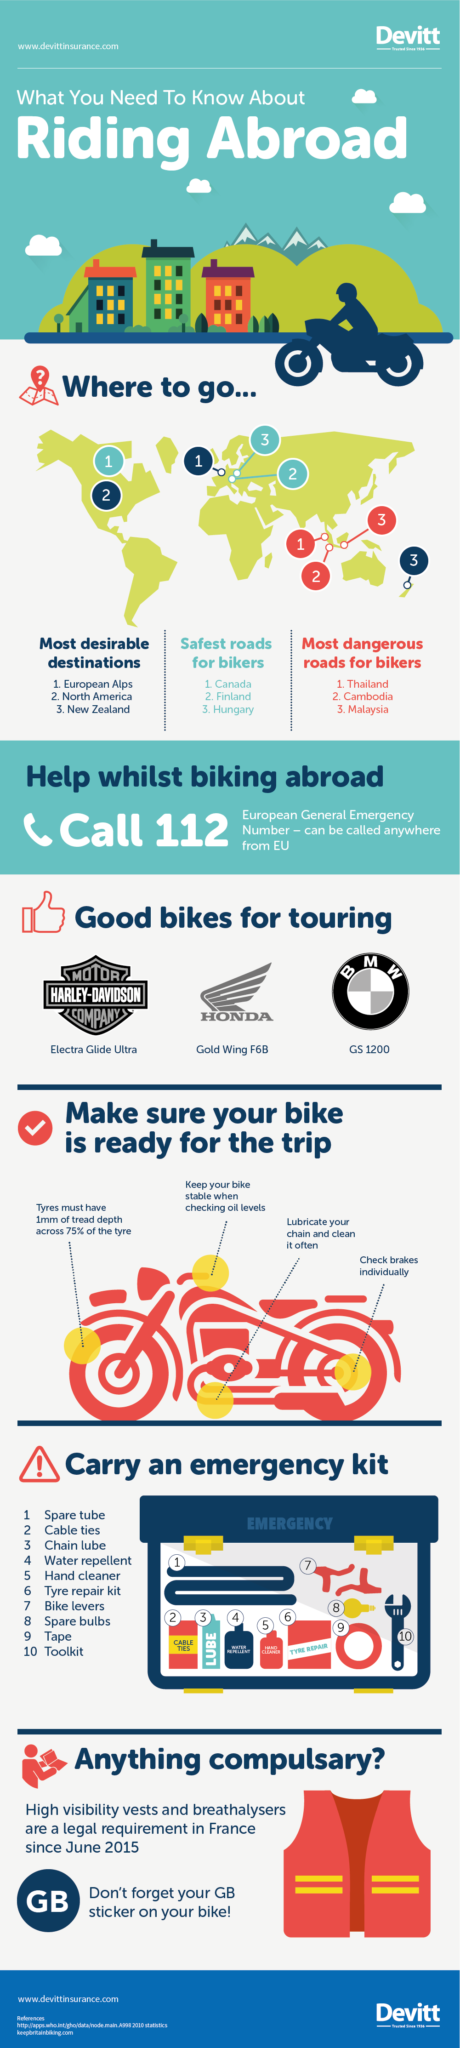 Devitt-Insurance-Riding-Abroad-Infographic